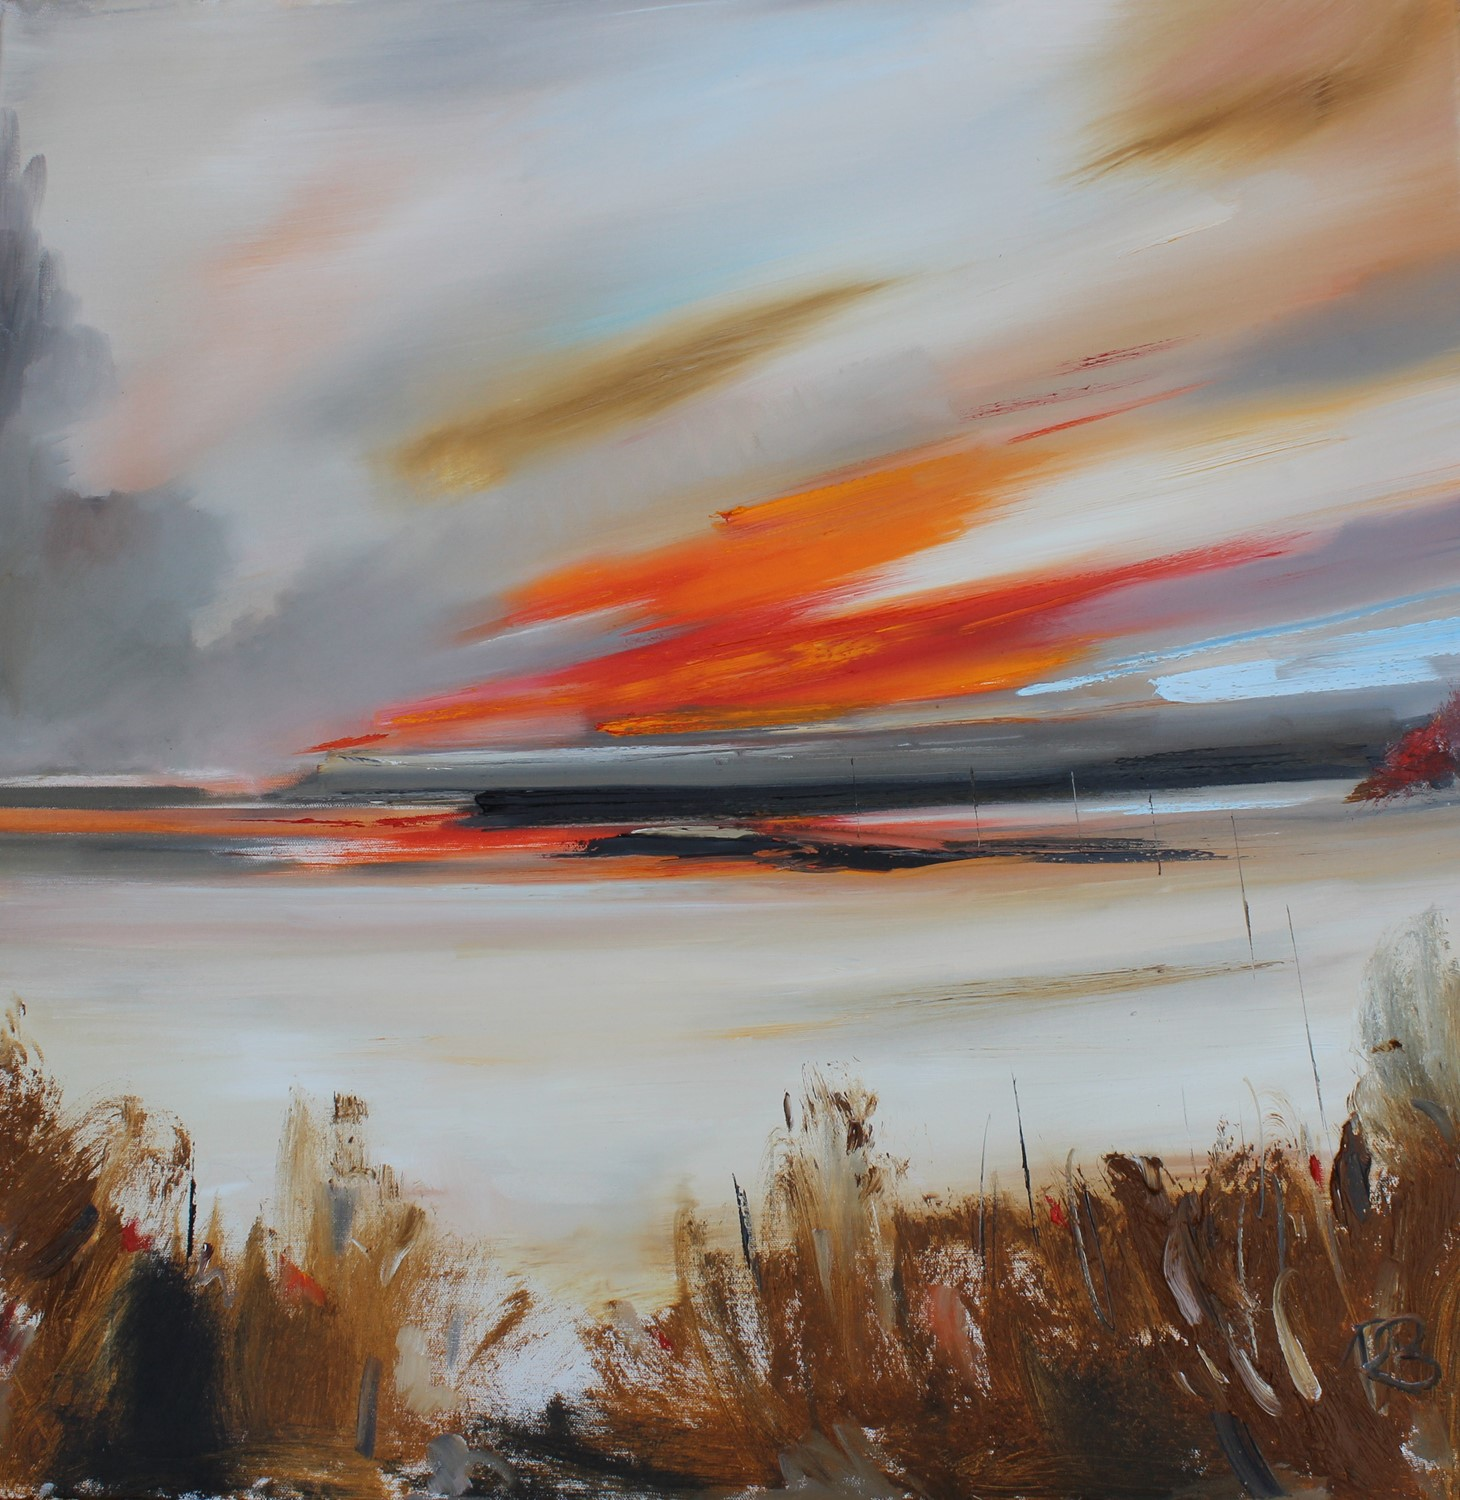 'Headed towards the Bay' by artist Rosanne Barr